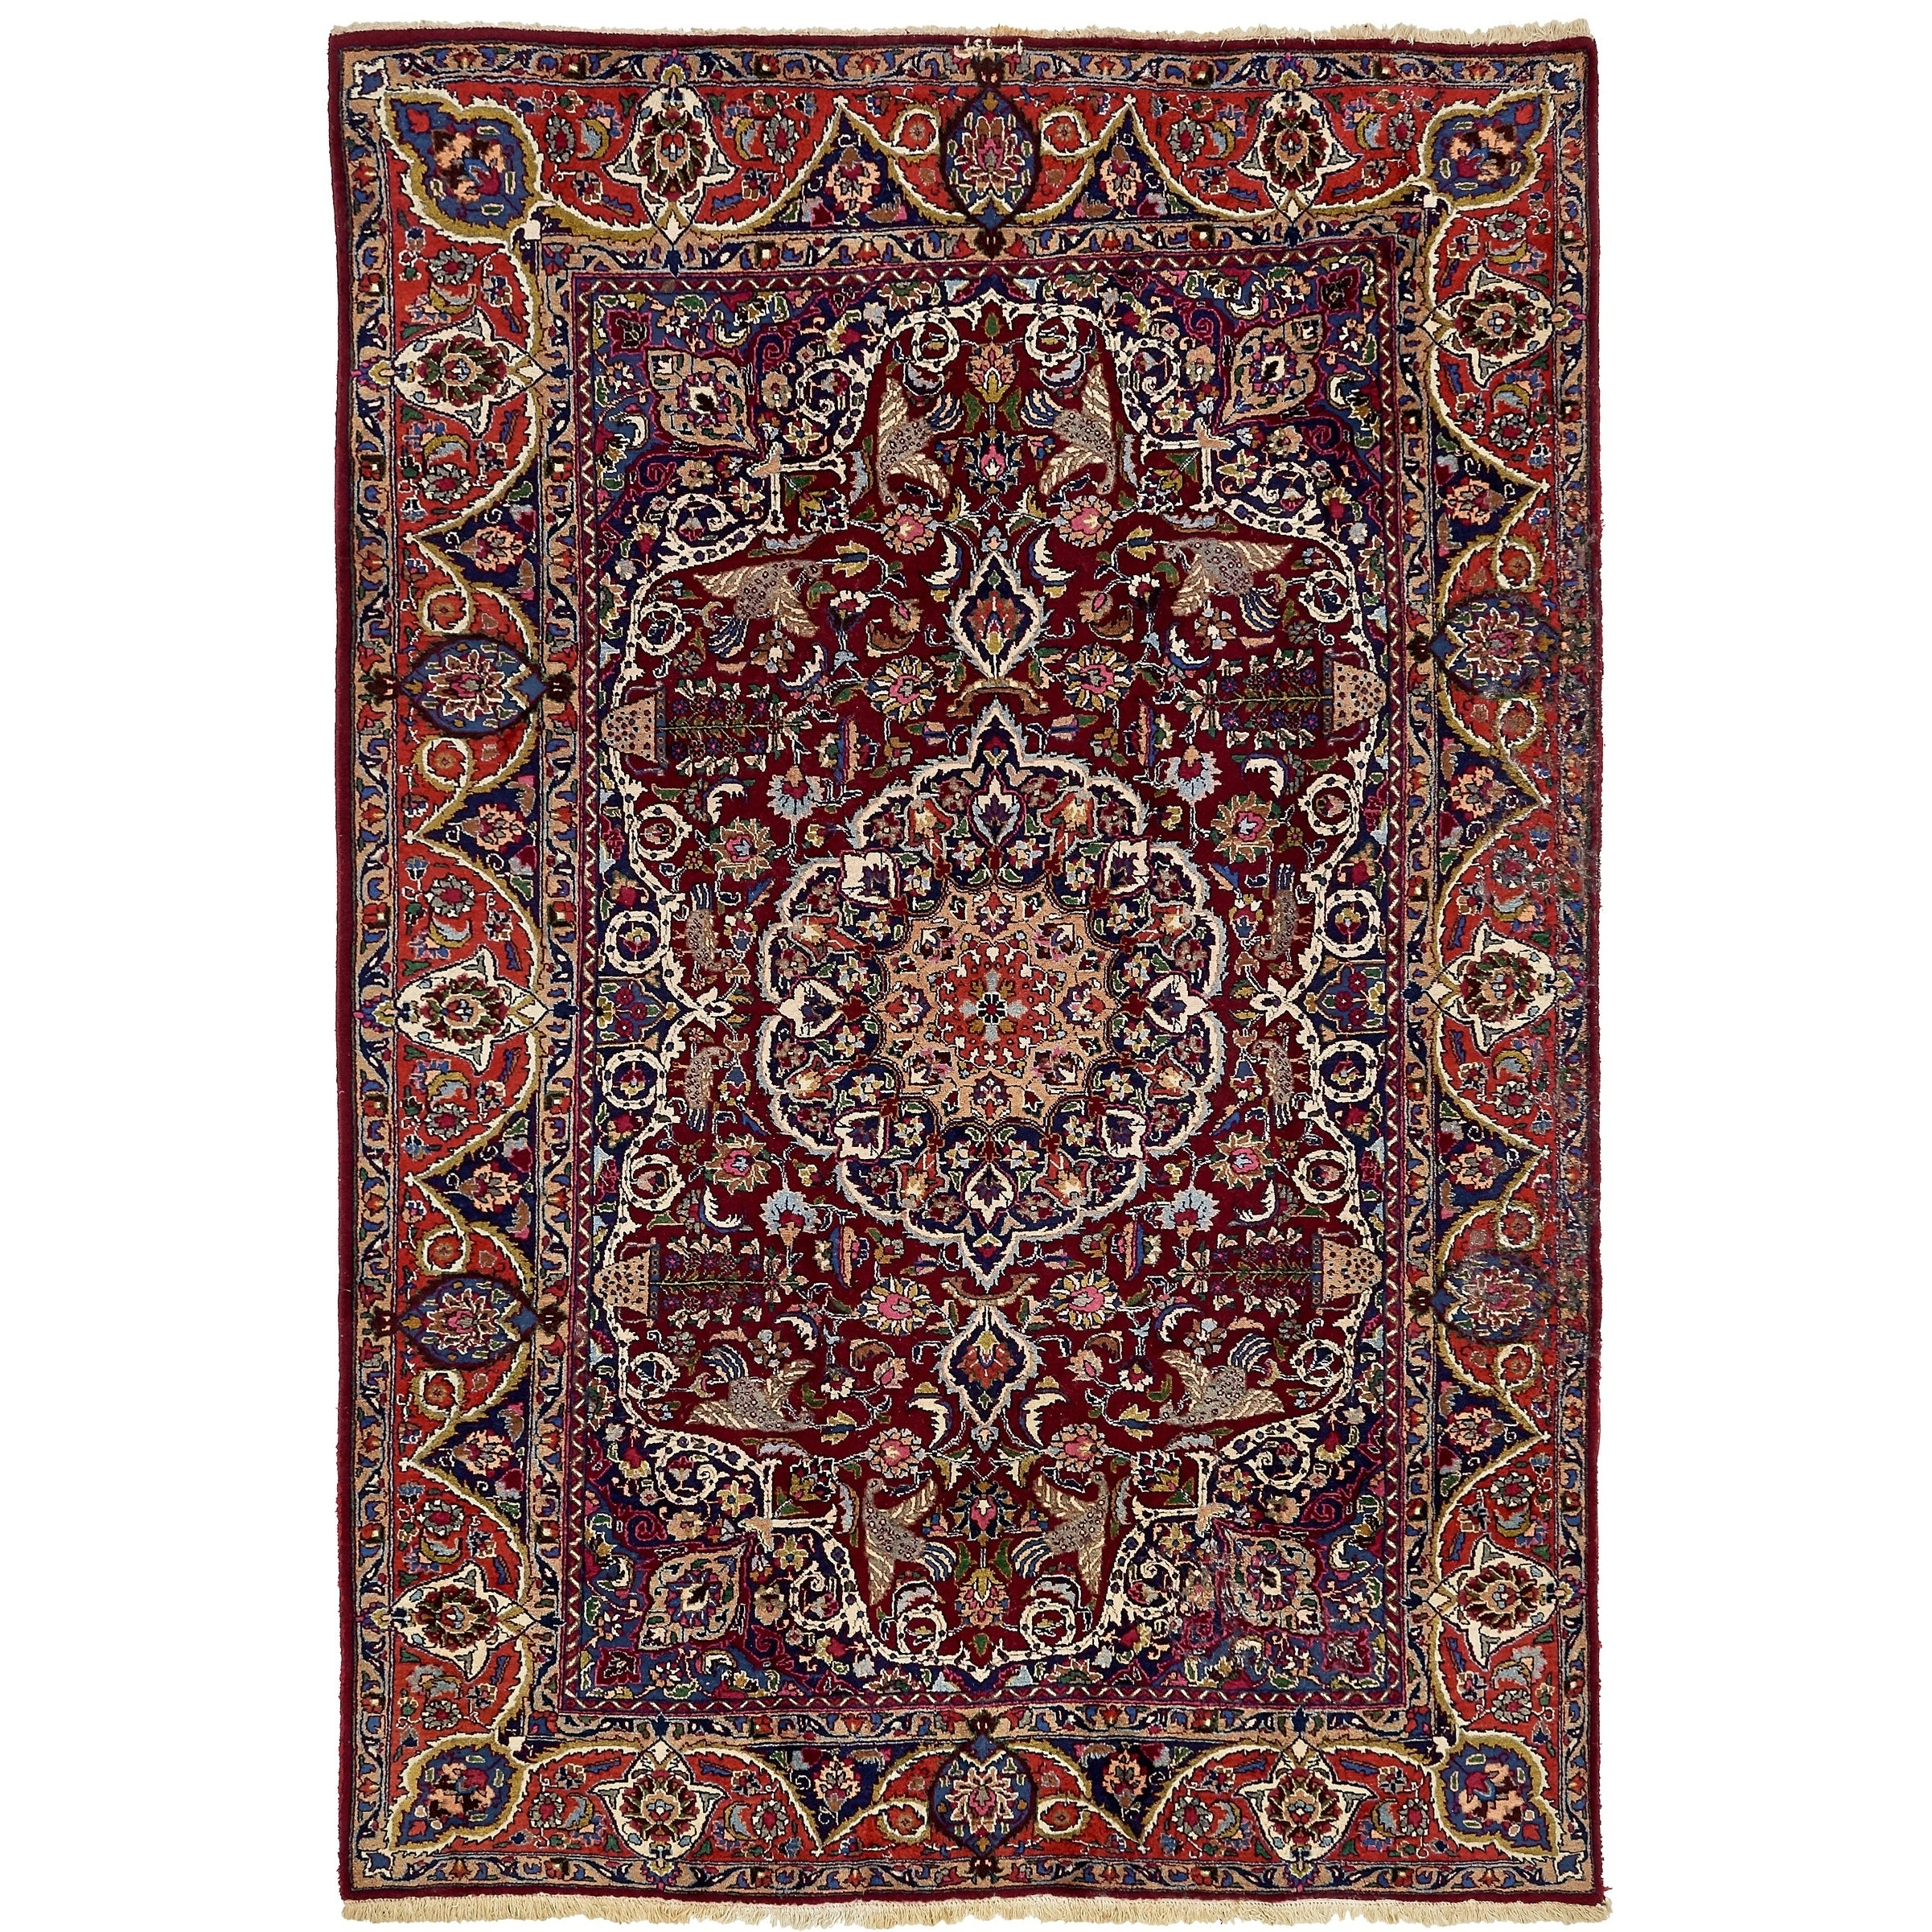 Hand Knotted Kashmar Semi Antique Wool Area Rug - 6 6 x 9 7 (Red - 6 6 x 9 7)